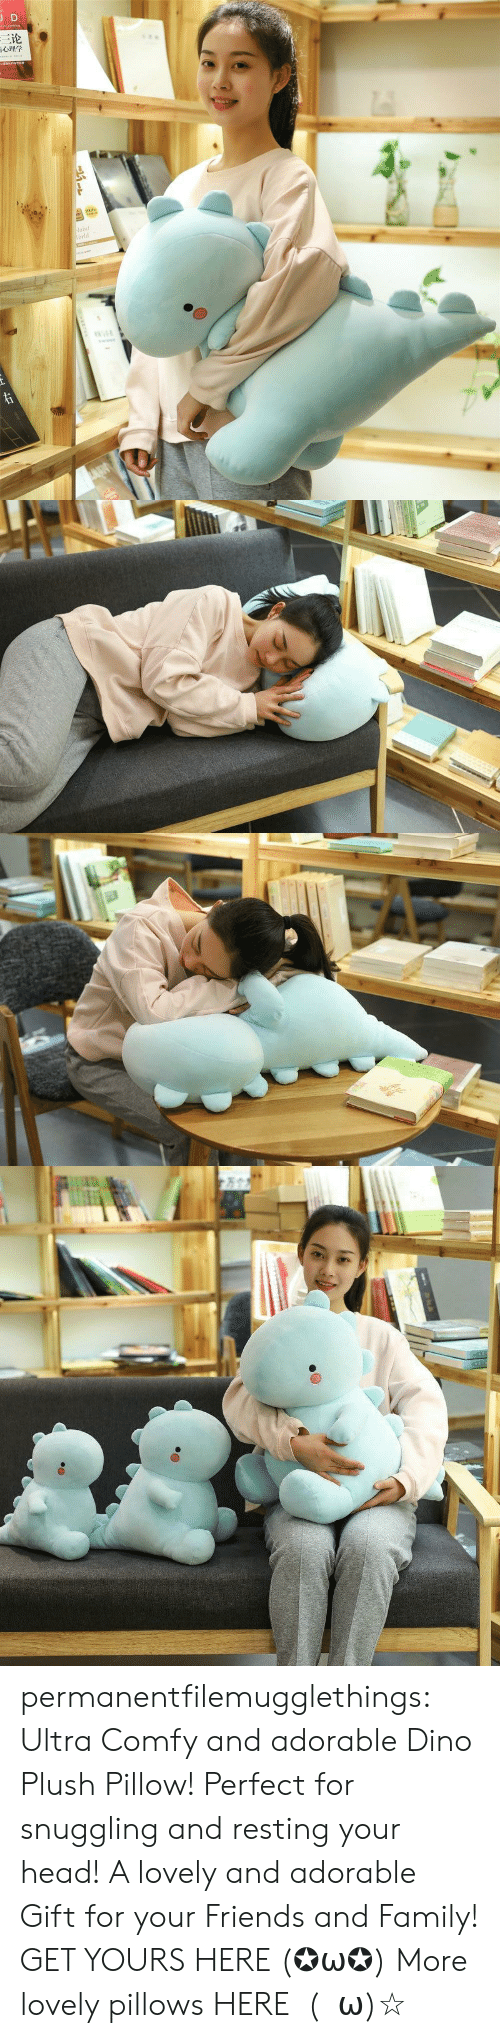 dino: JD  三论  laint  orld  TDNAR  ww.e permanentfilemugglethings:  Ultra Comfy and adorable Dino Plush Pillow! Perfect for snuggling and resting your head! A lovely and adorable Gift for your Friends and Family! GET YOURS HERE (✪ω✪) More lovely pillows HERE  (・ω)☆